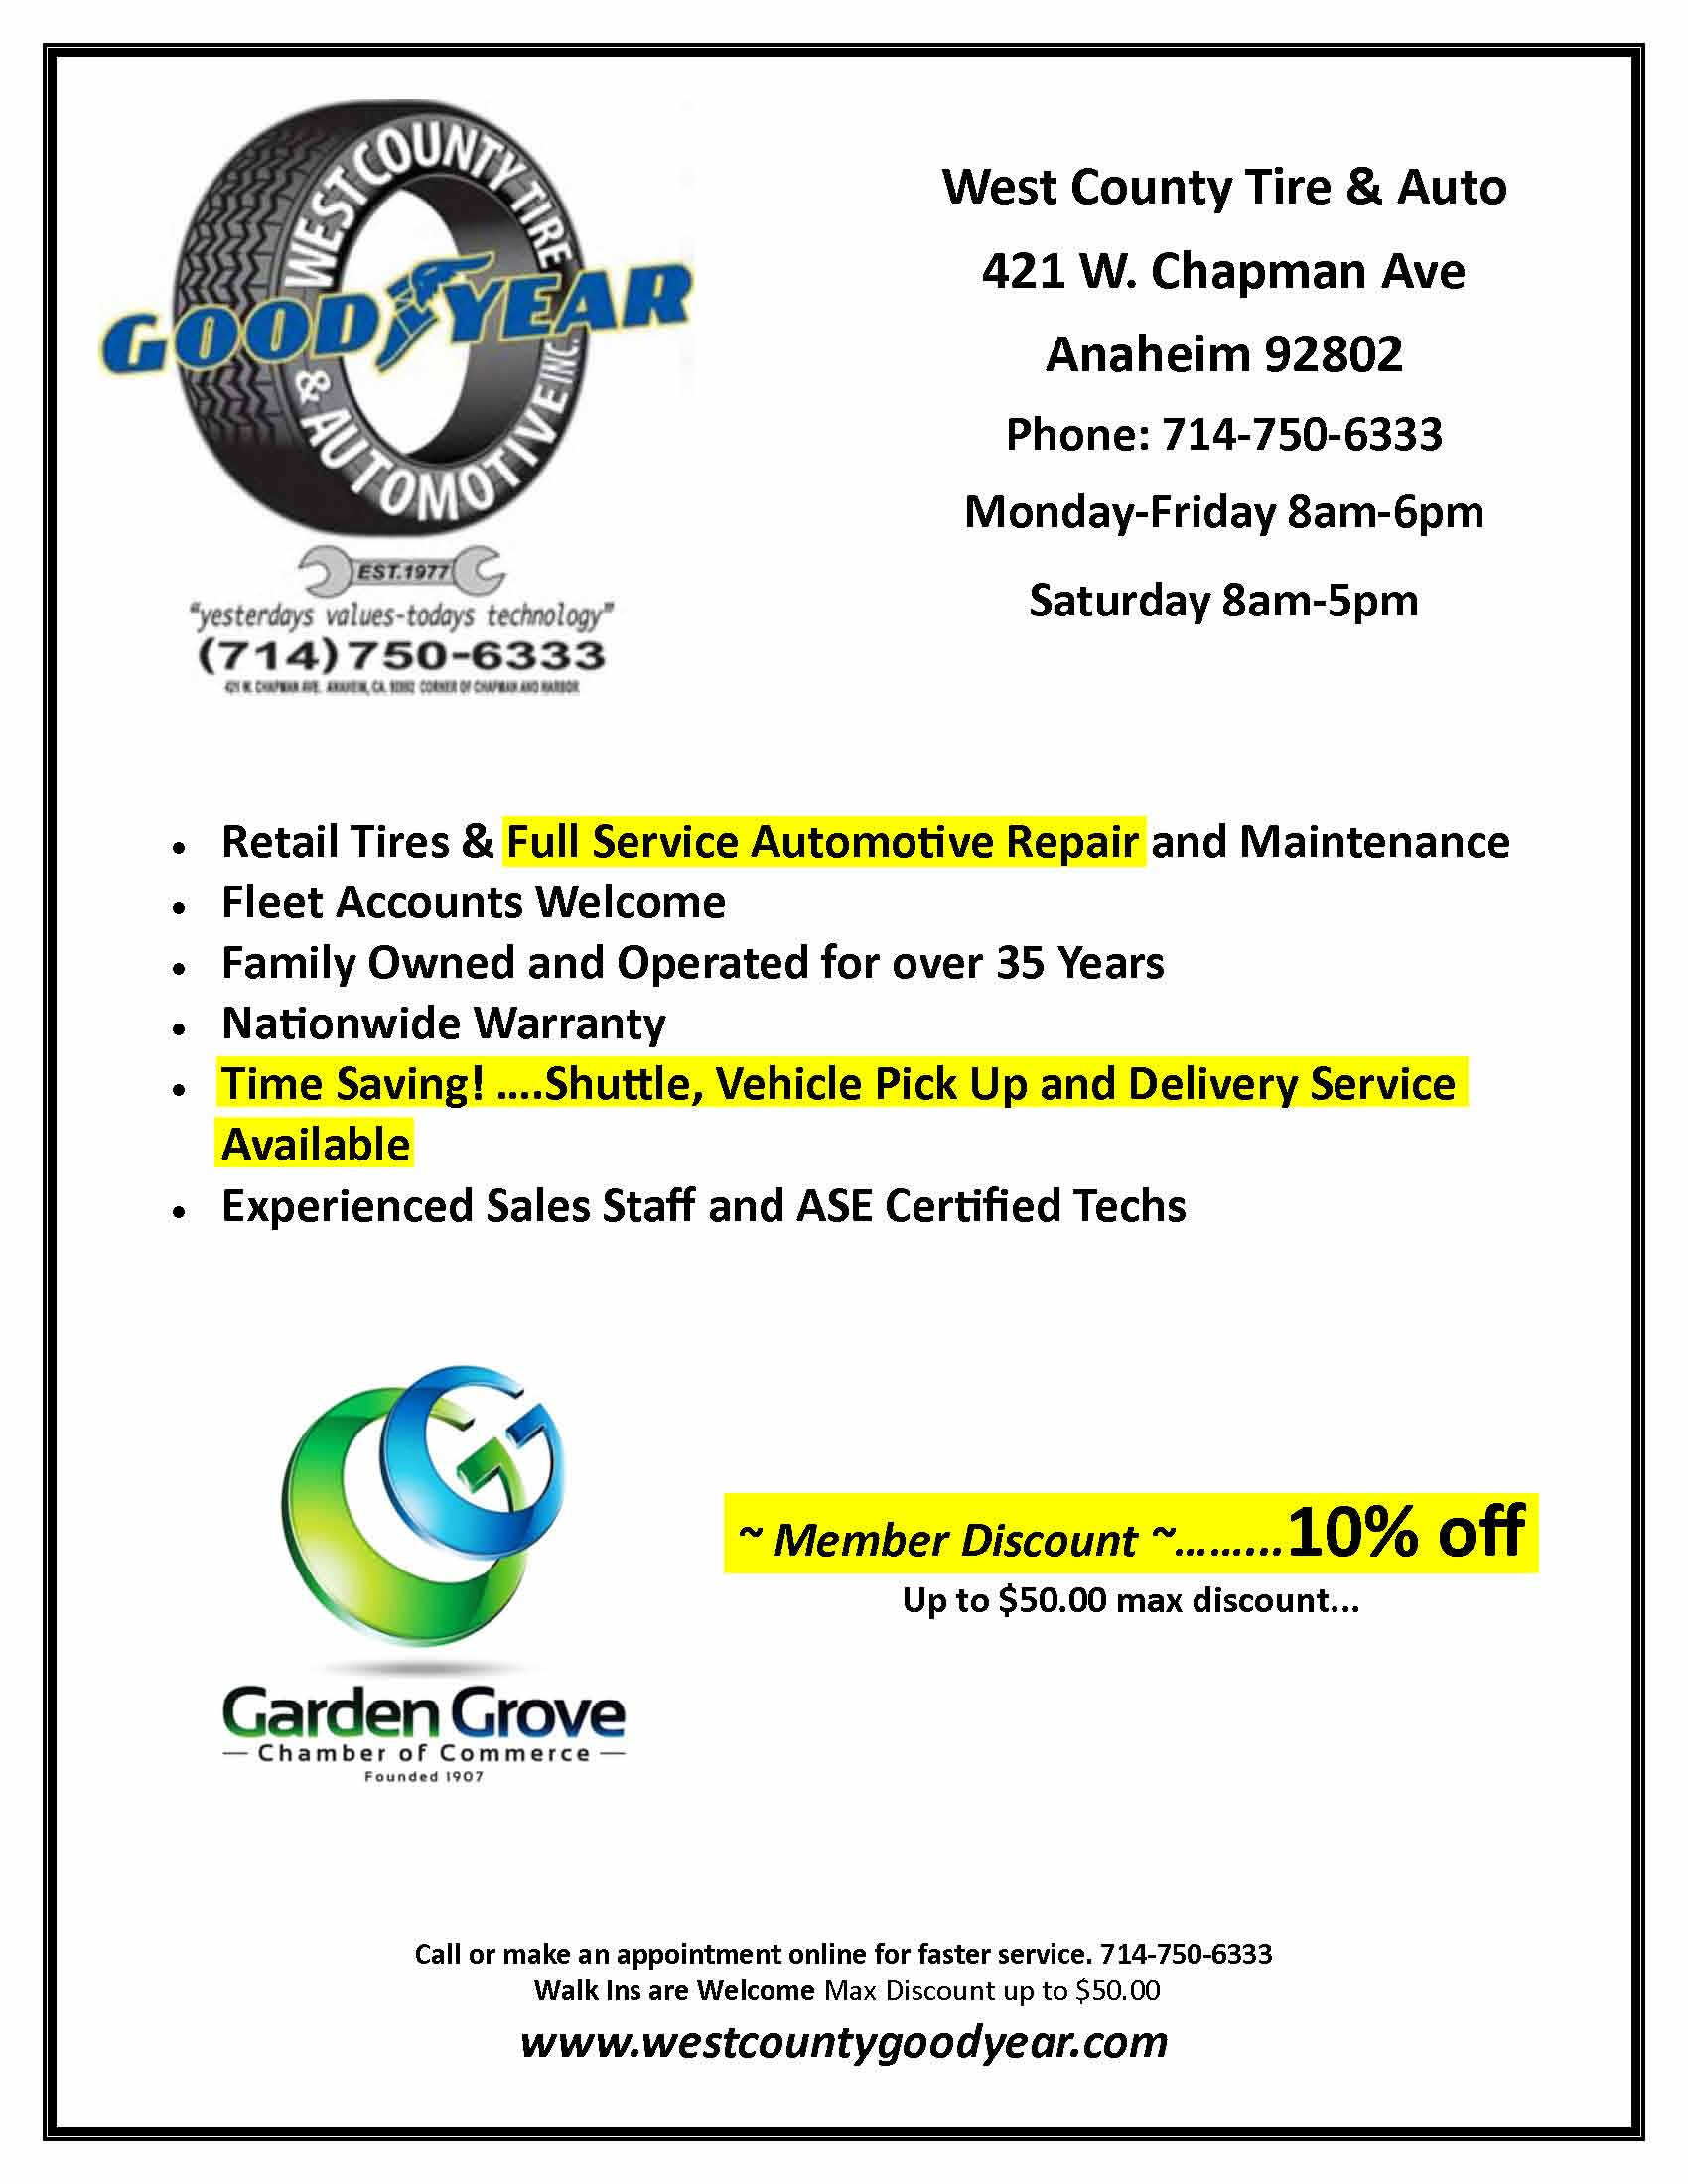 Contact the Chamber for more information regarding these discounts!